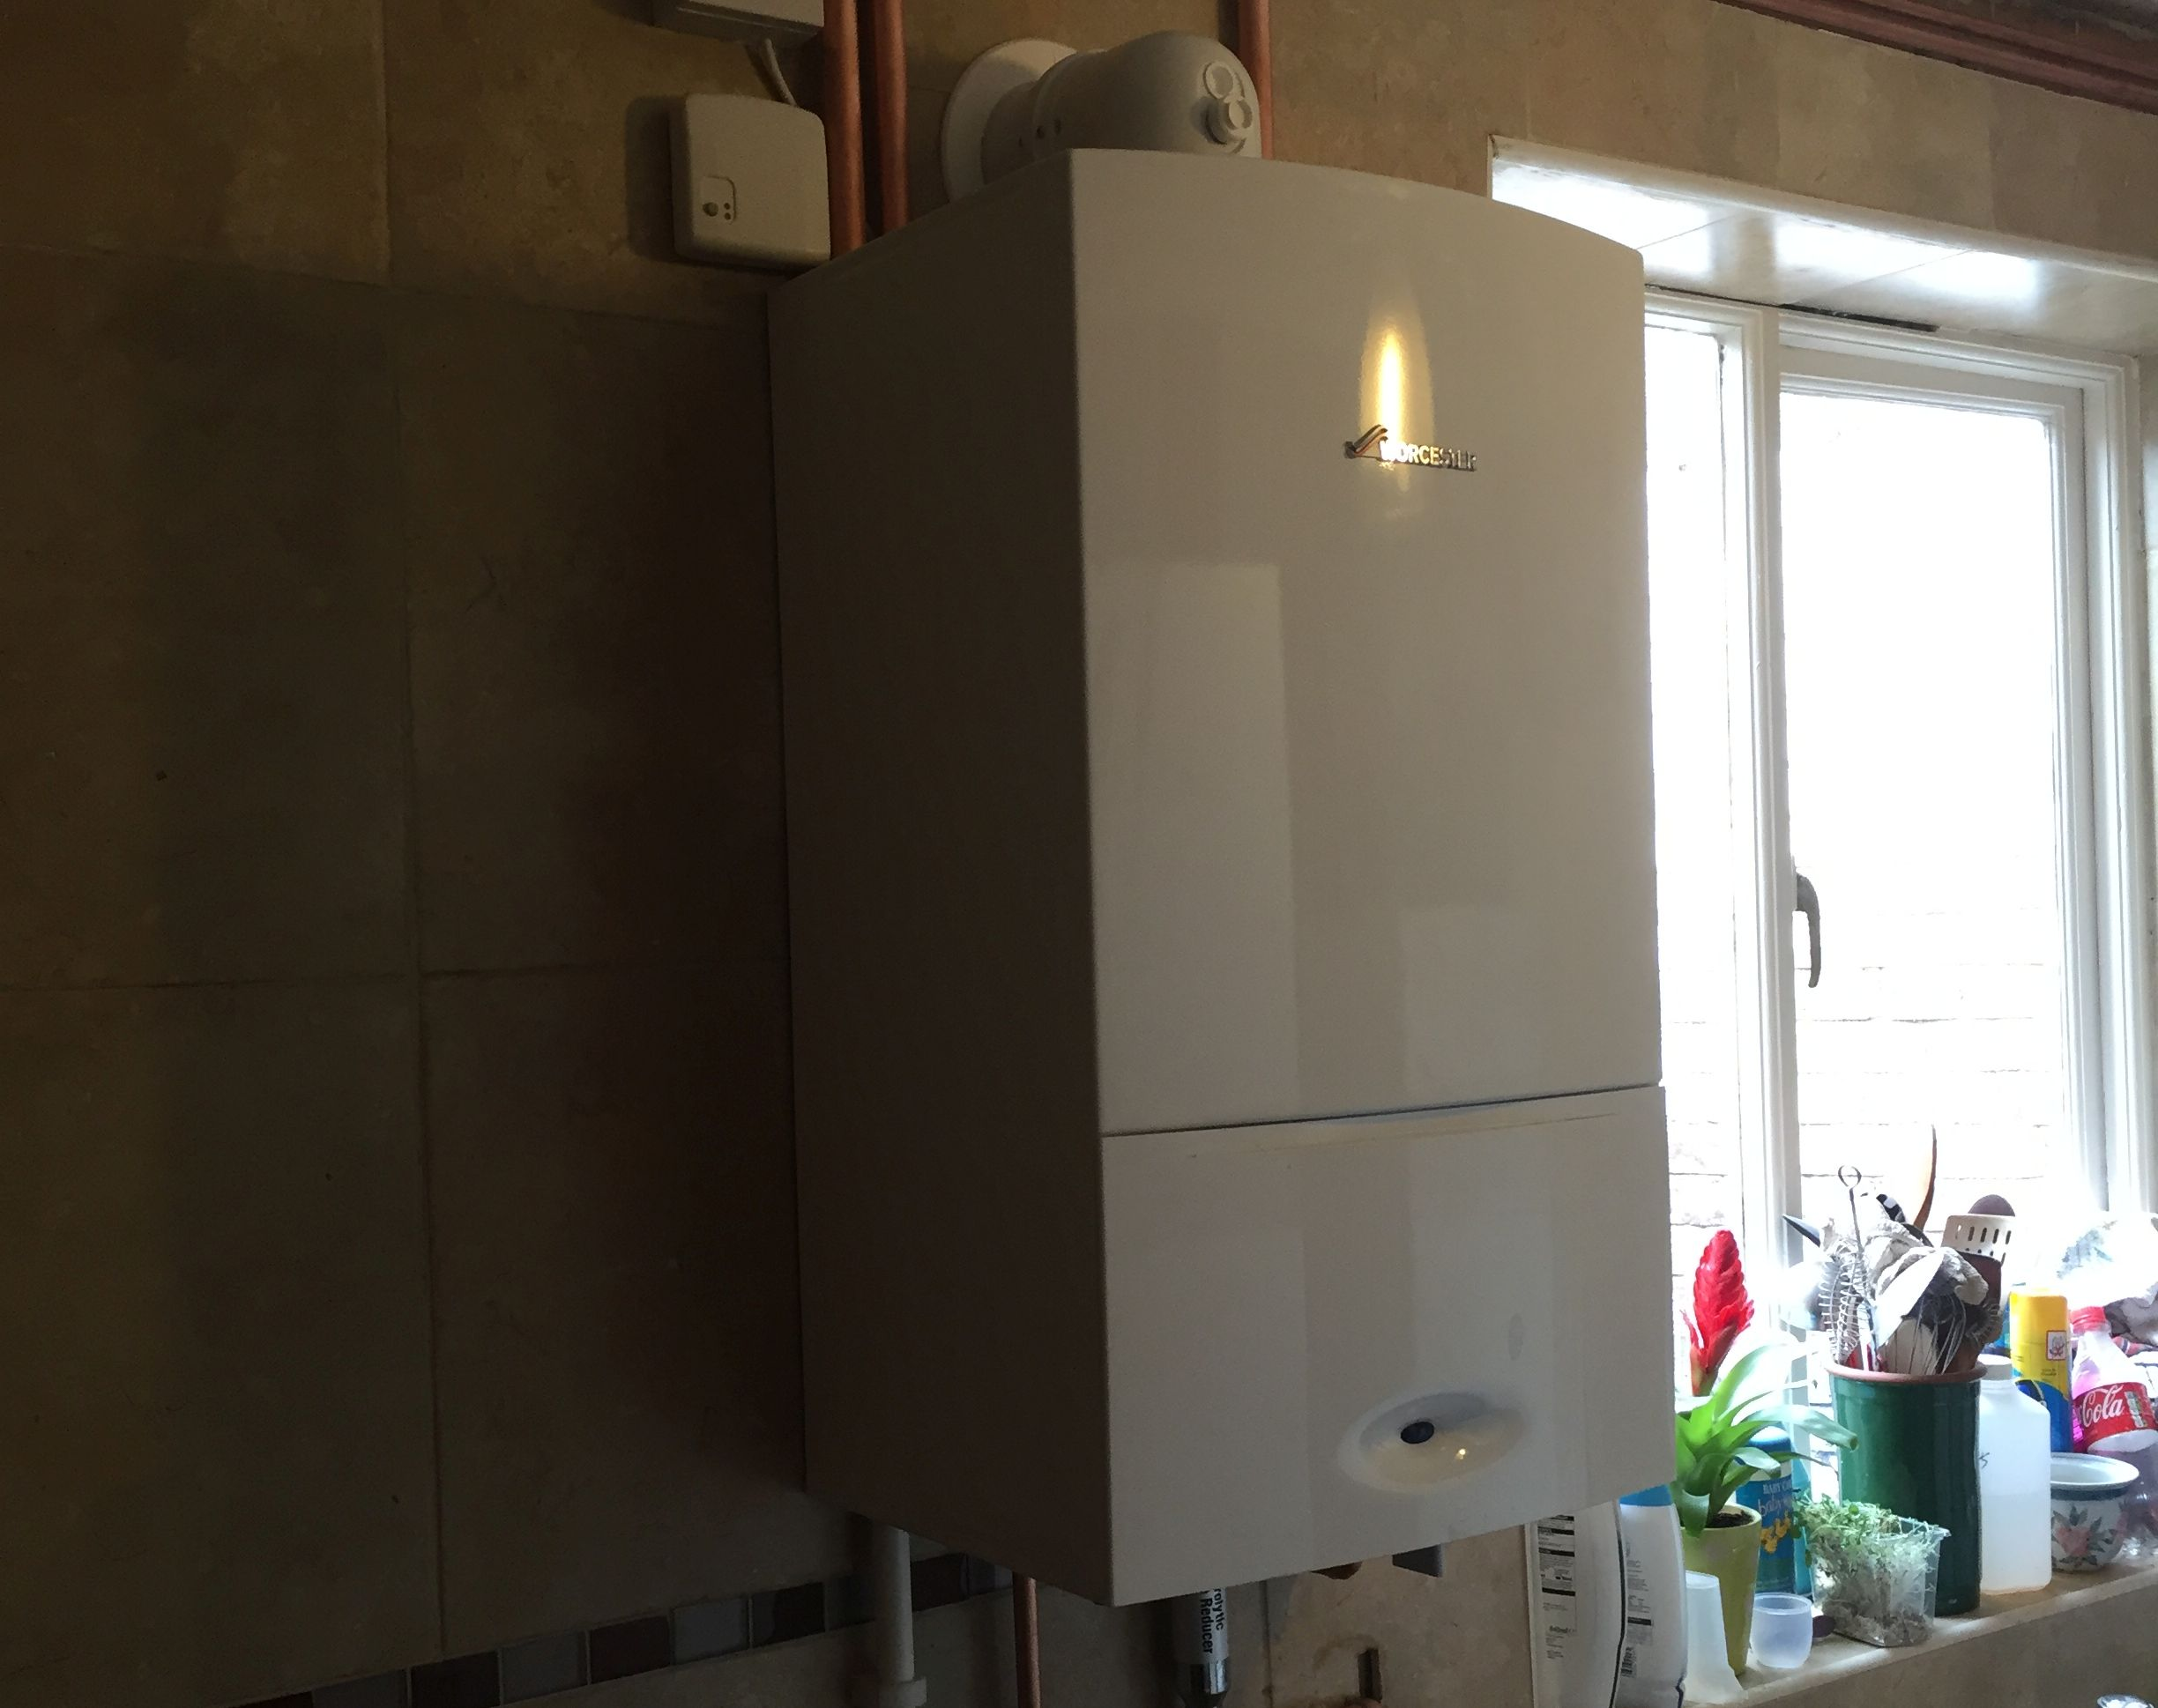 worcester boiler repairs in stevenage